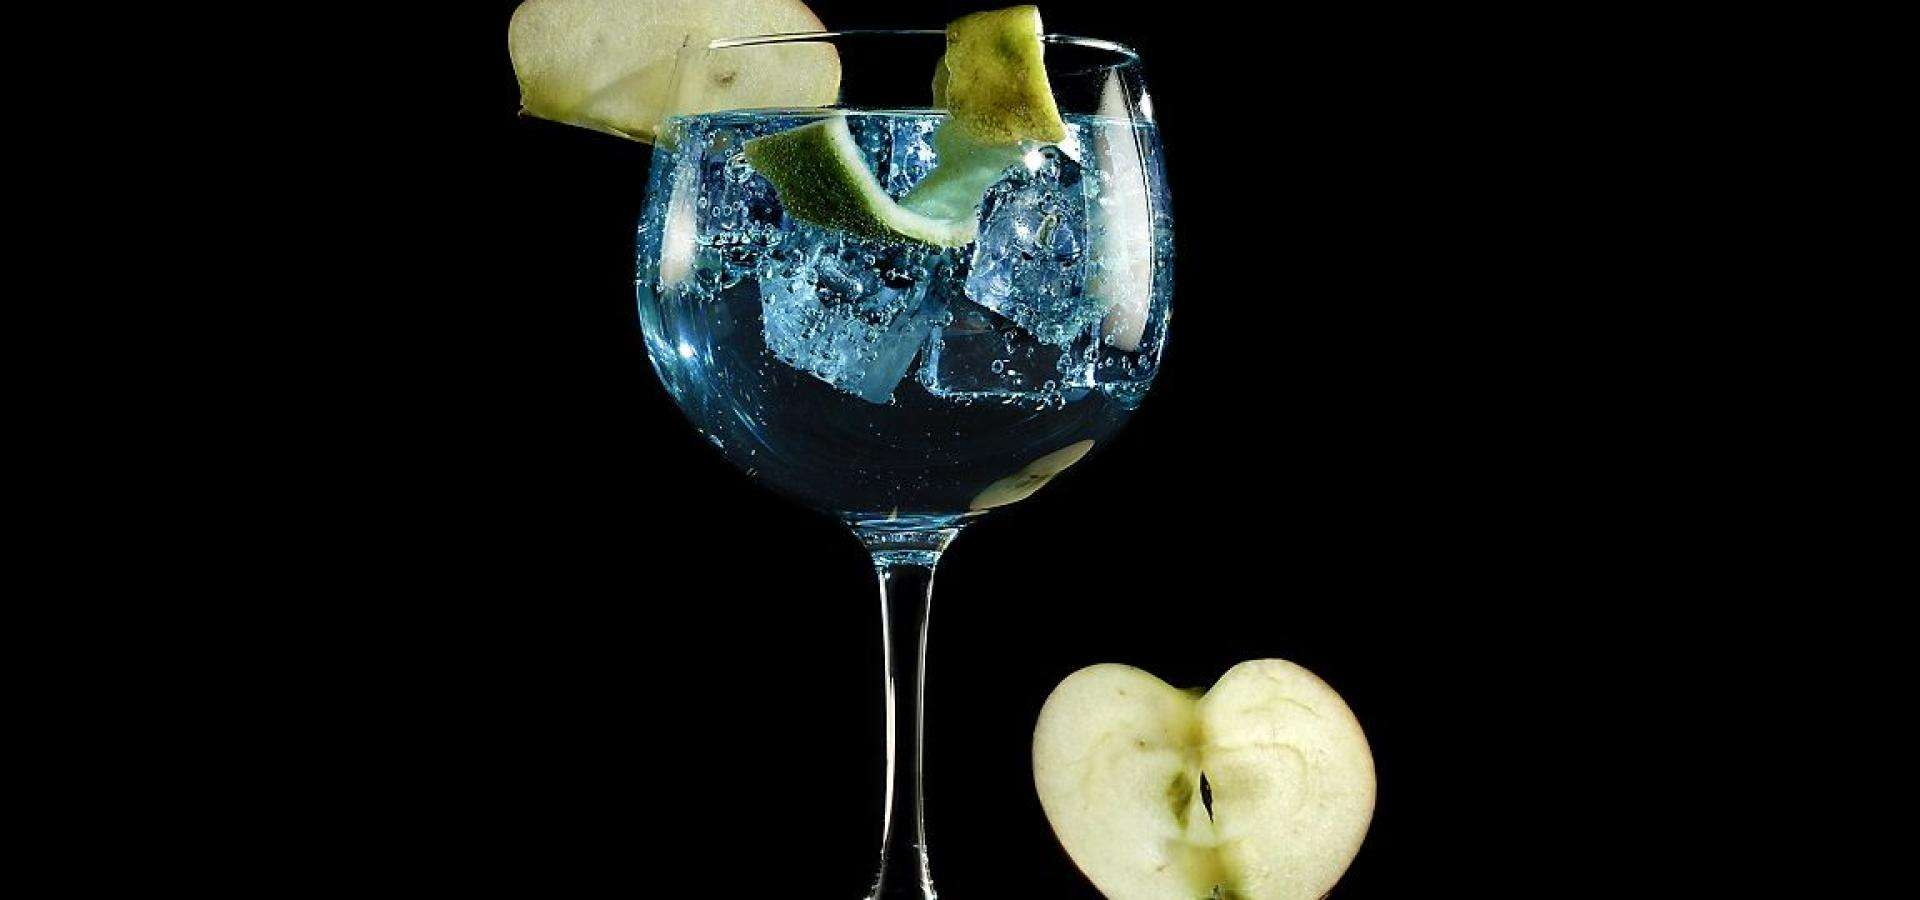 Gin Tonic con aceite de oliva virgen extra arbequina